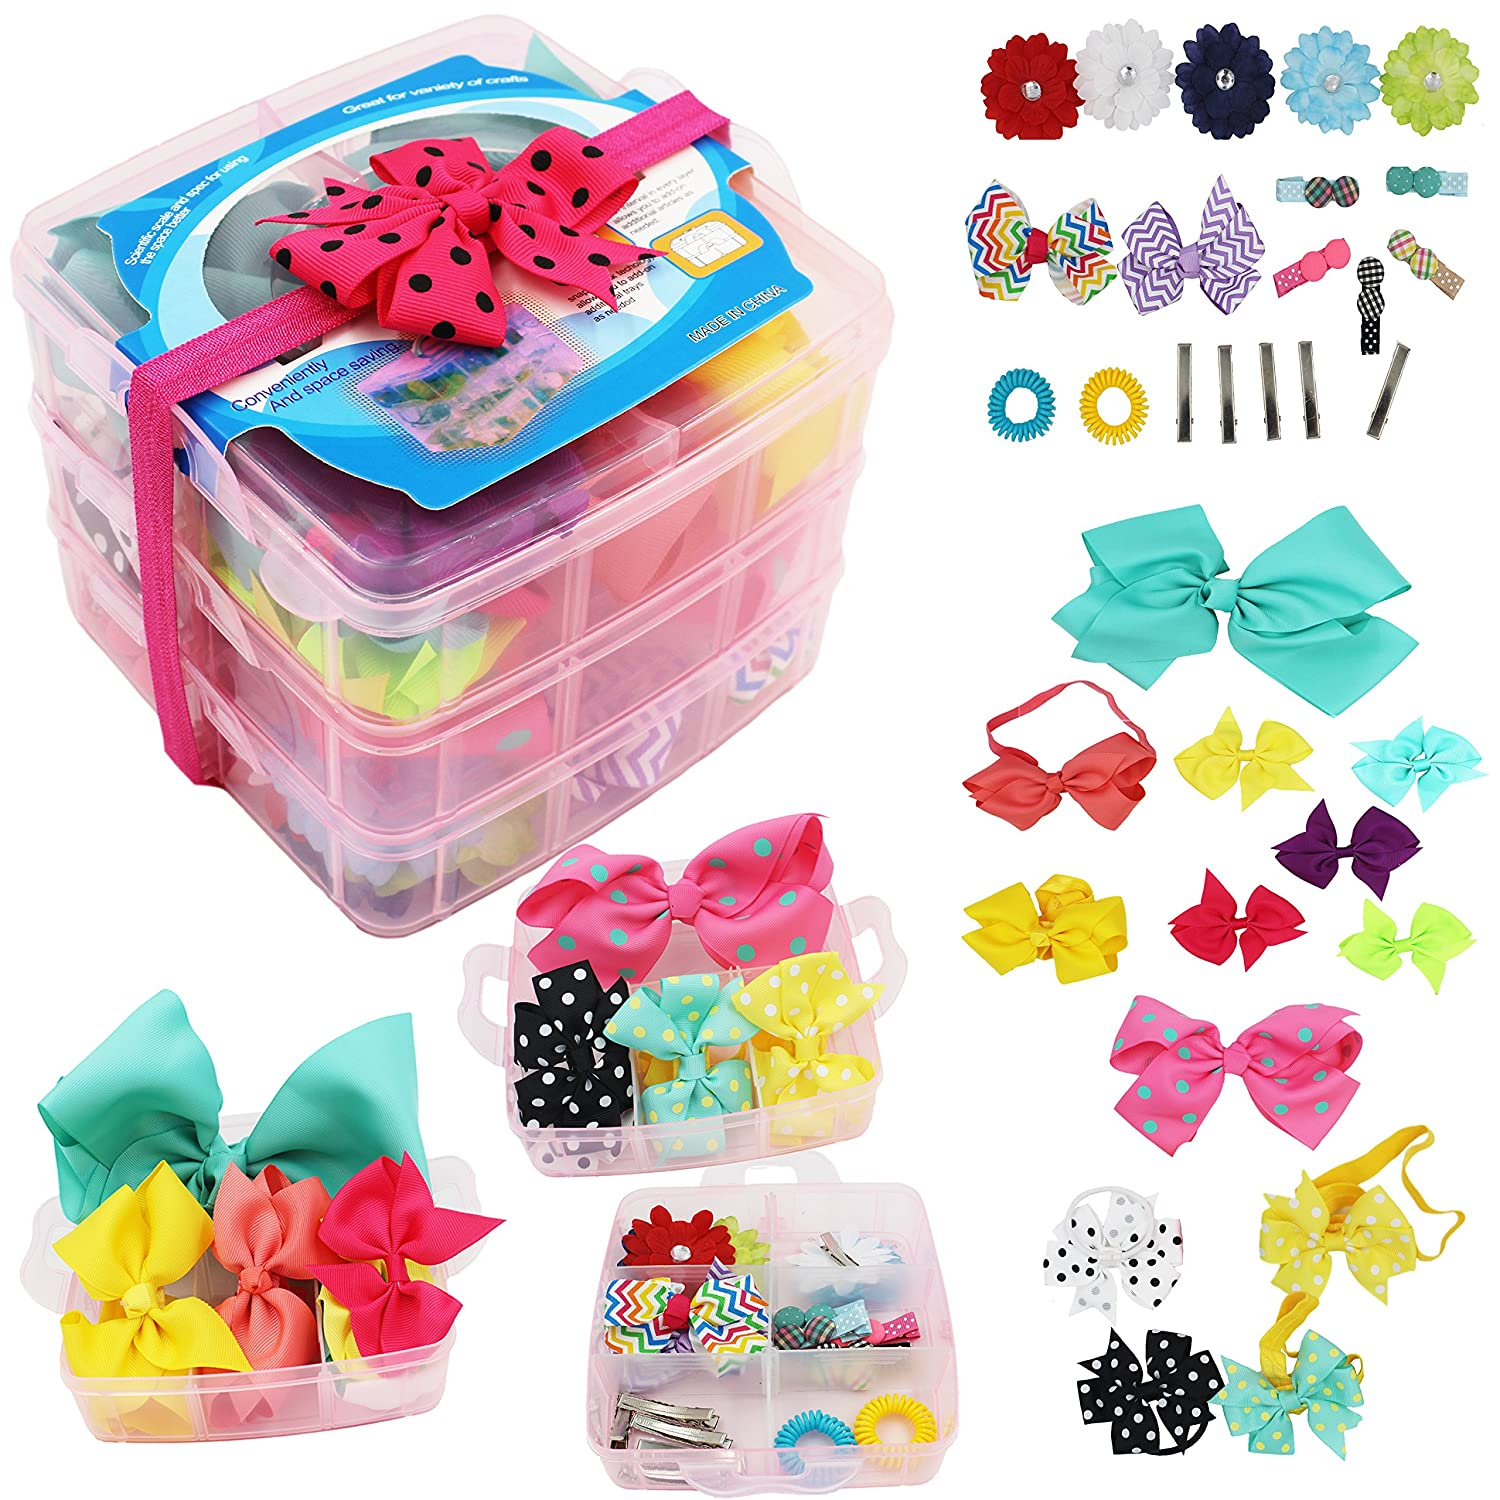 3 Layer Girls Hair Accessories Gift Box with Lot of Hair clips elastic hair tie candy clips Hair Bows alligator clips Cellot